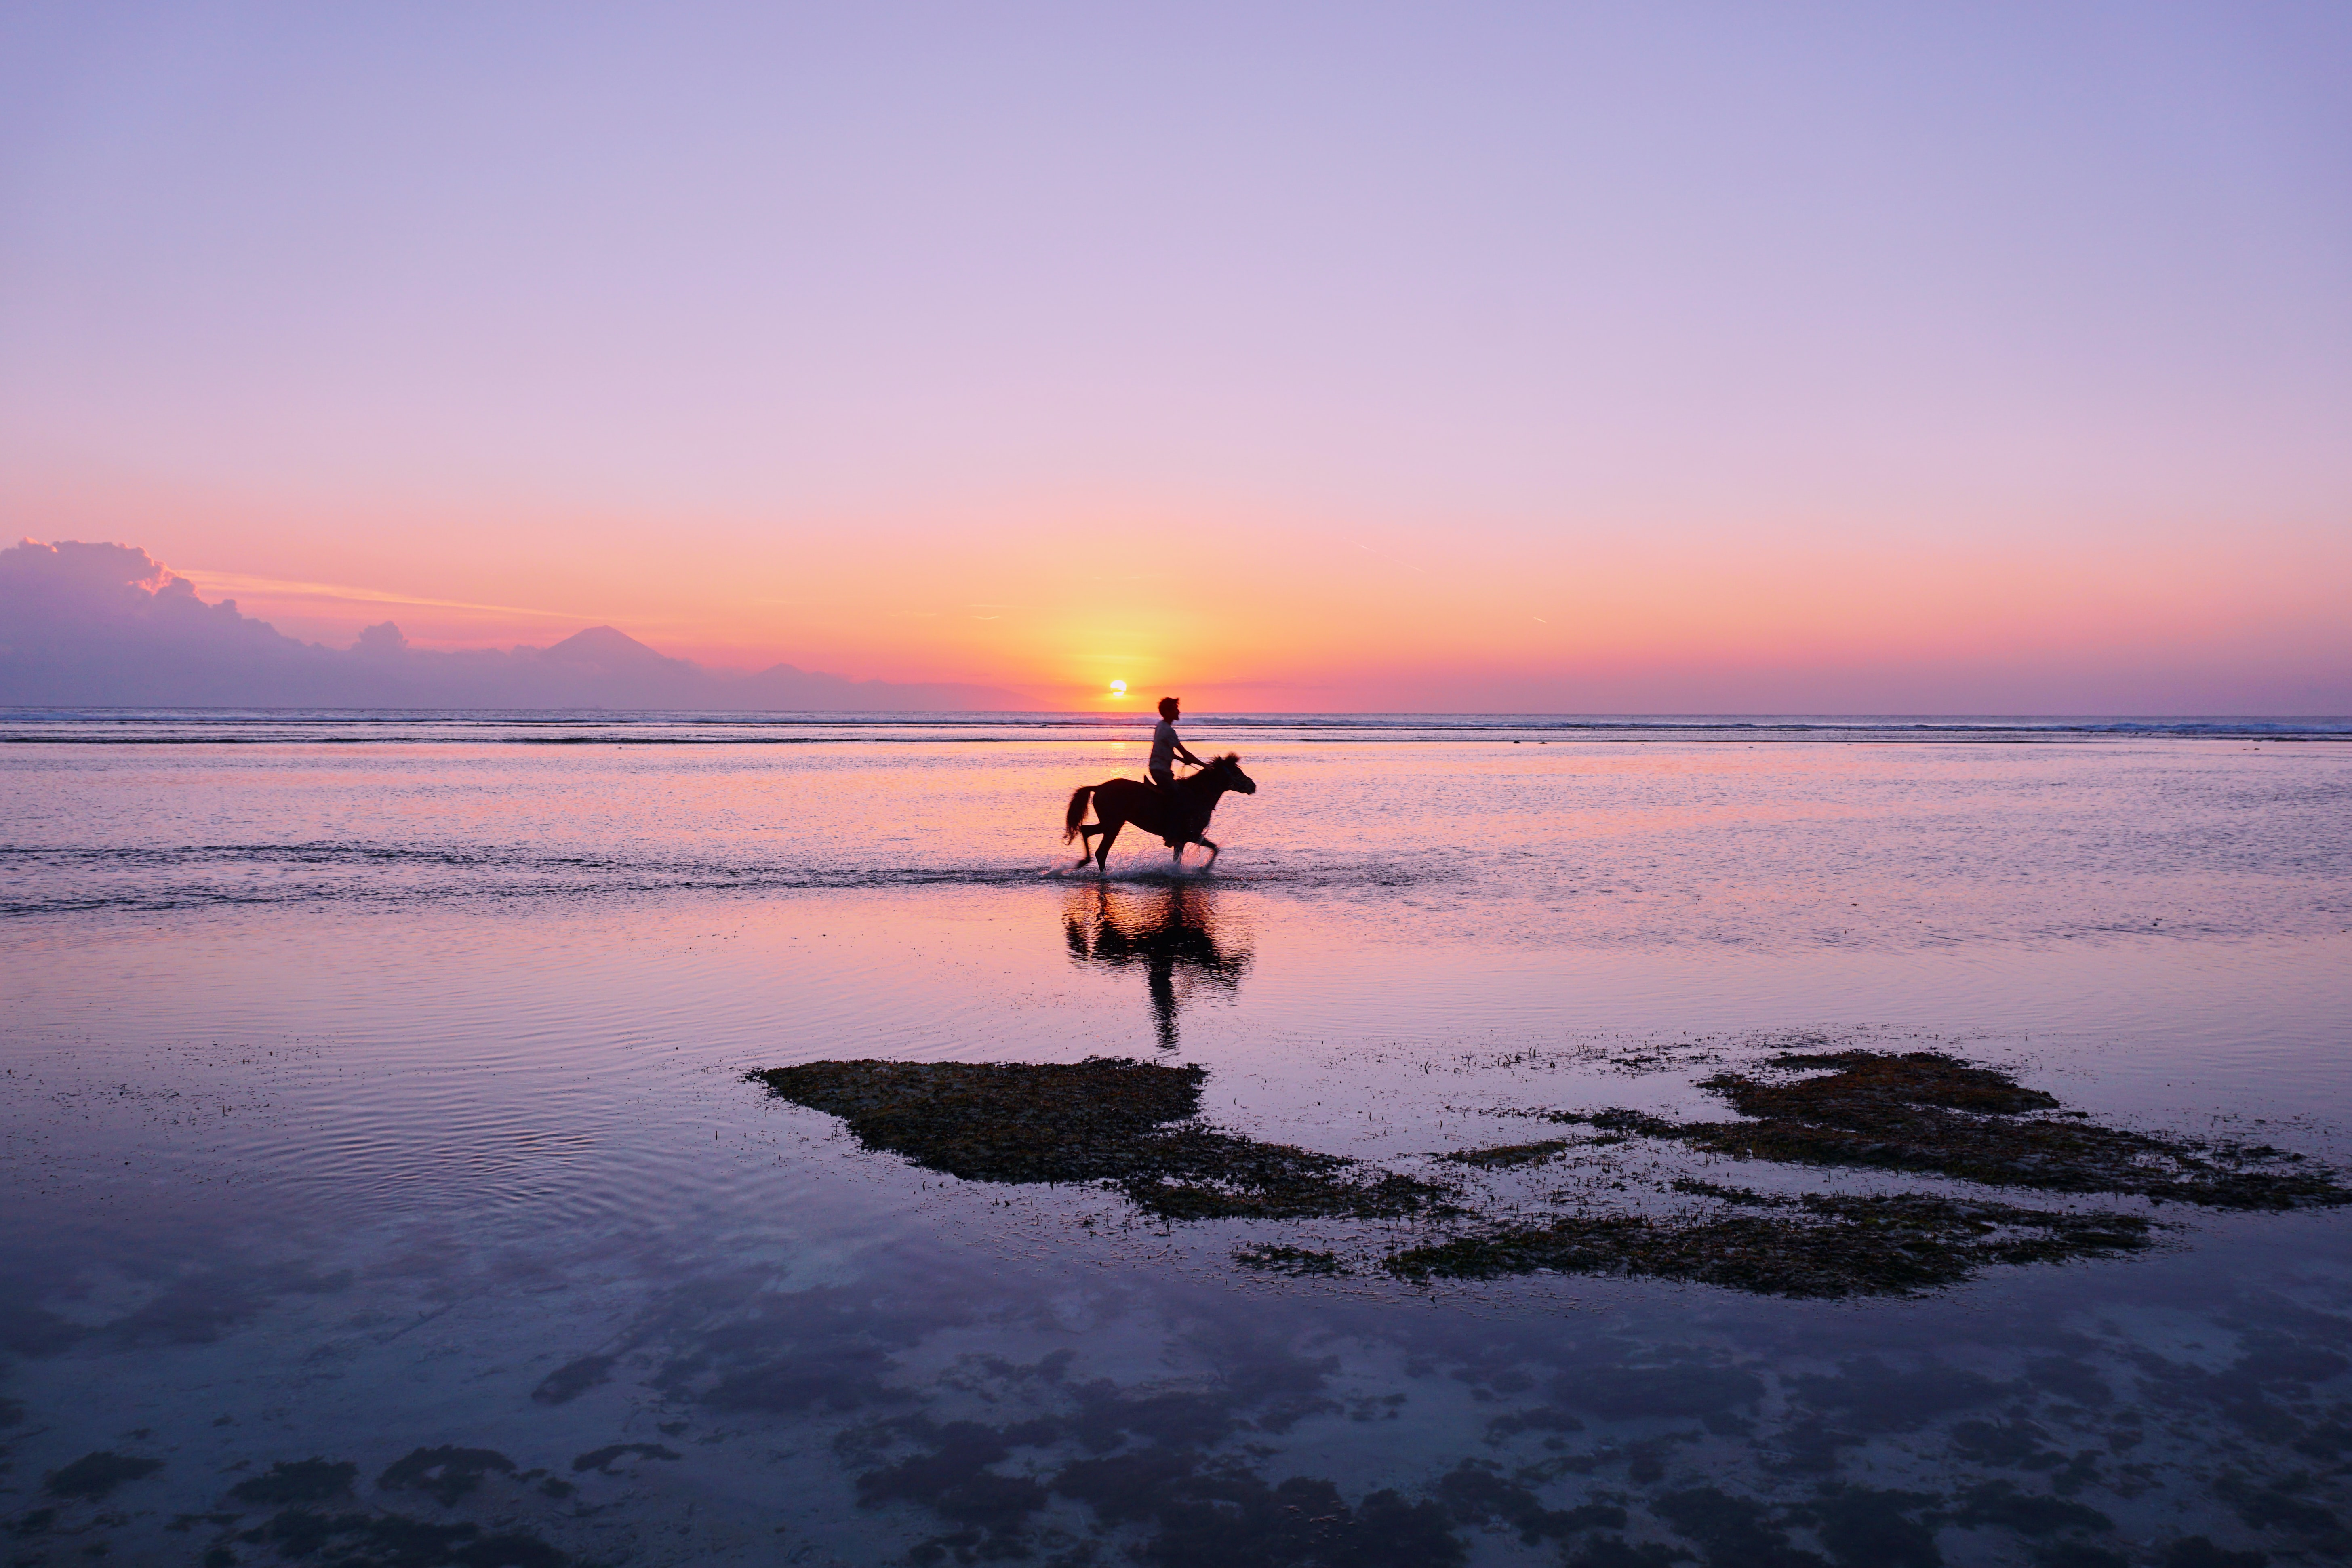 person riding horse on shore